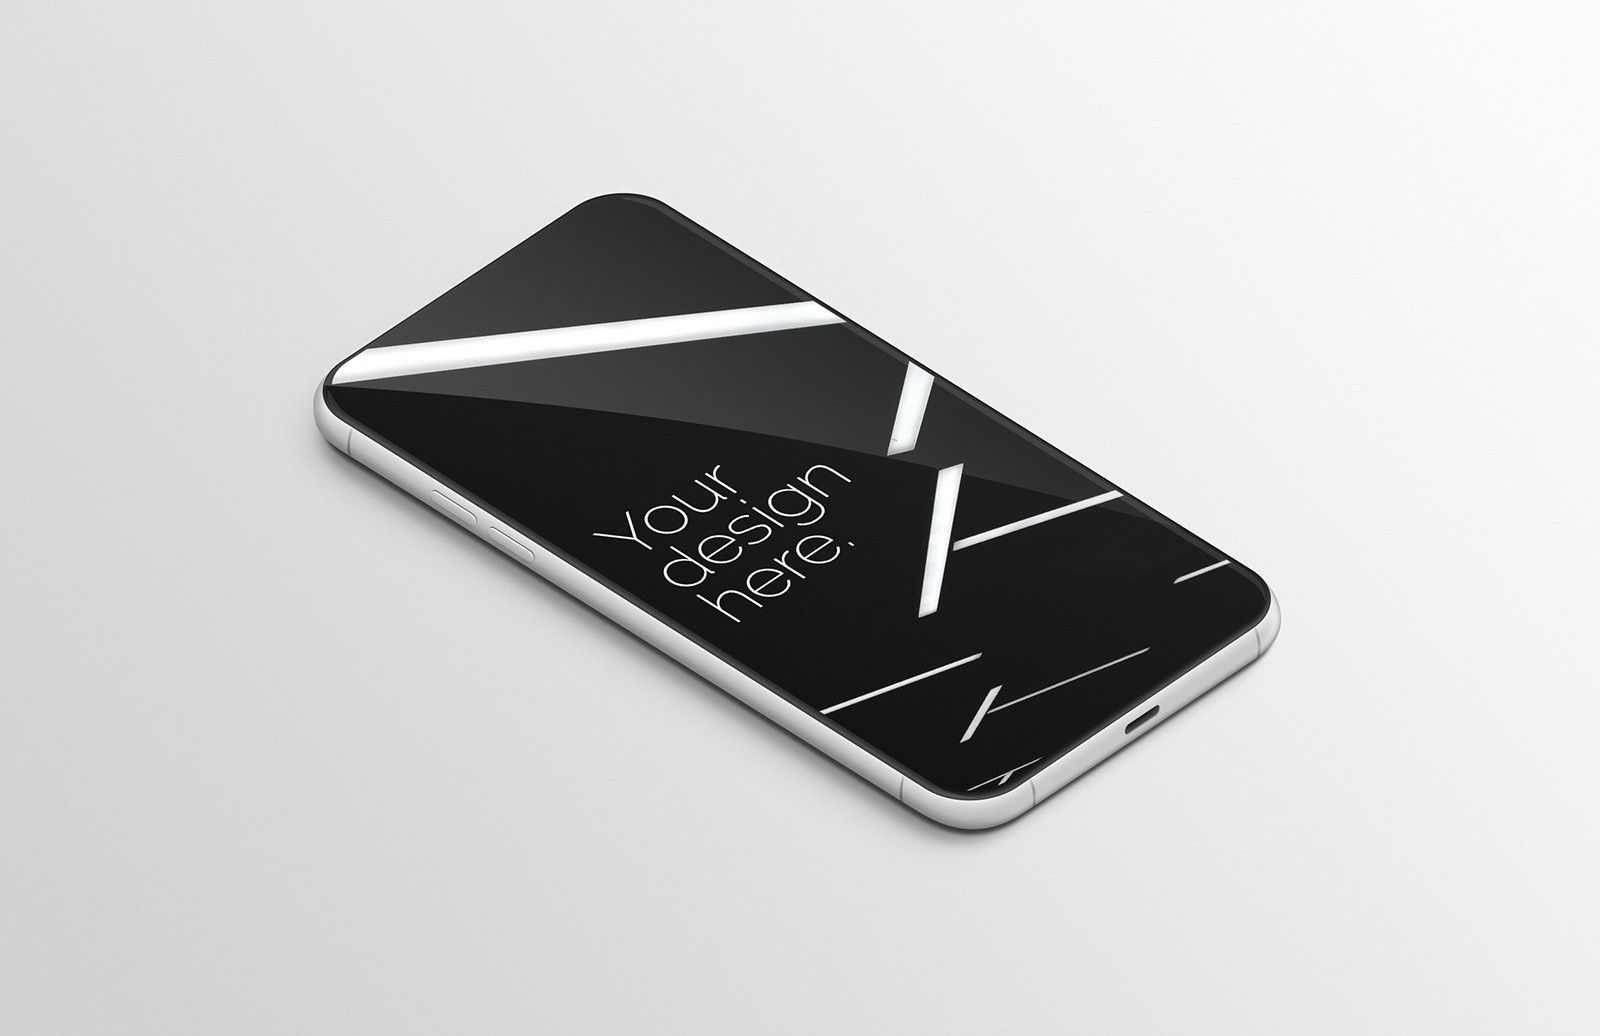 Generic Mobile Device Mockup Preview 1